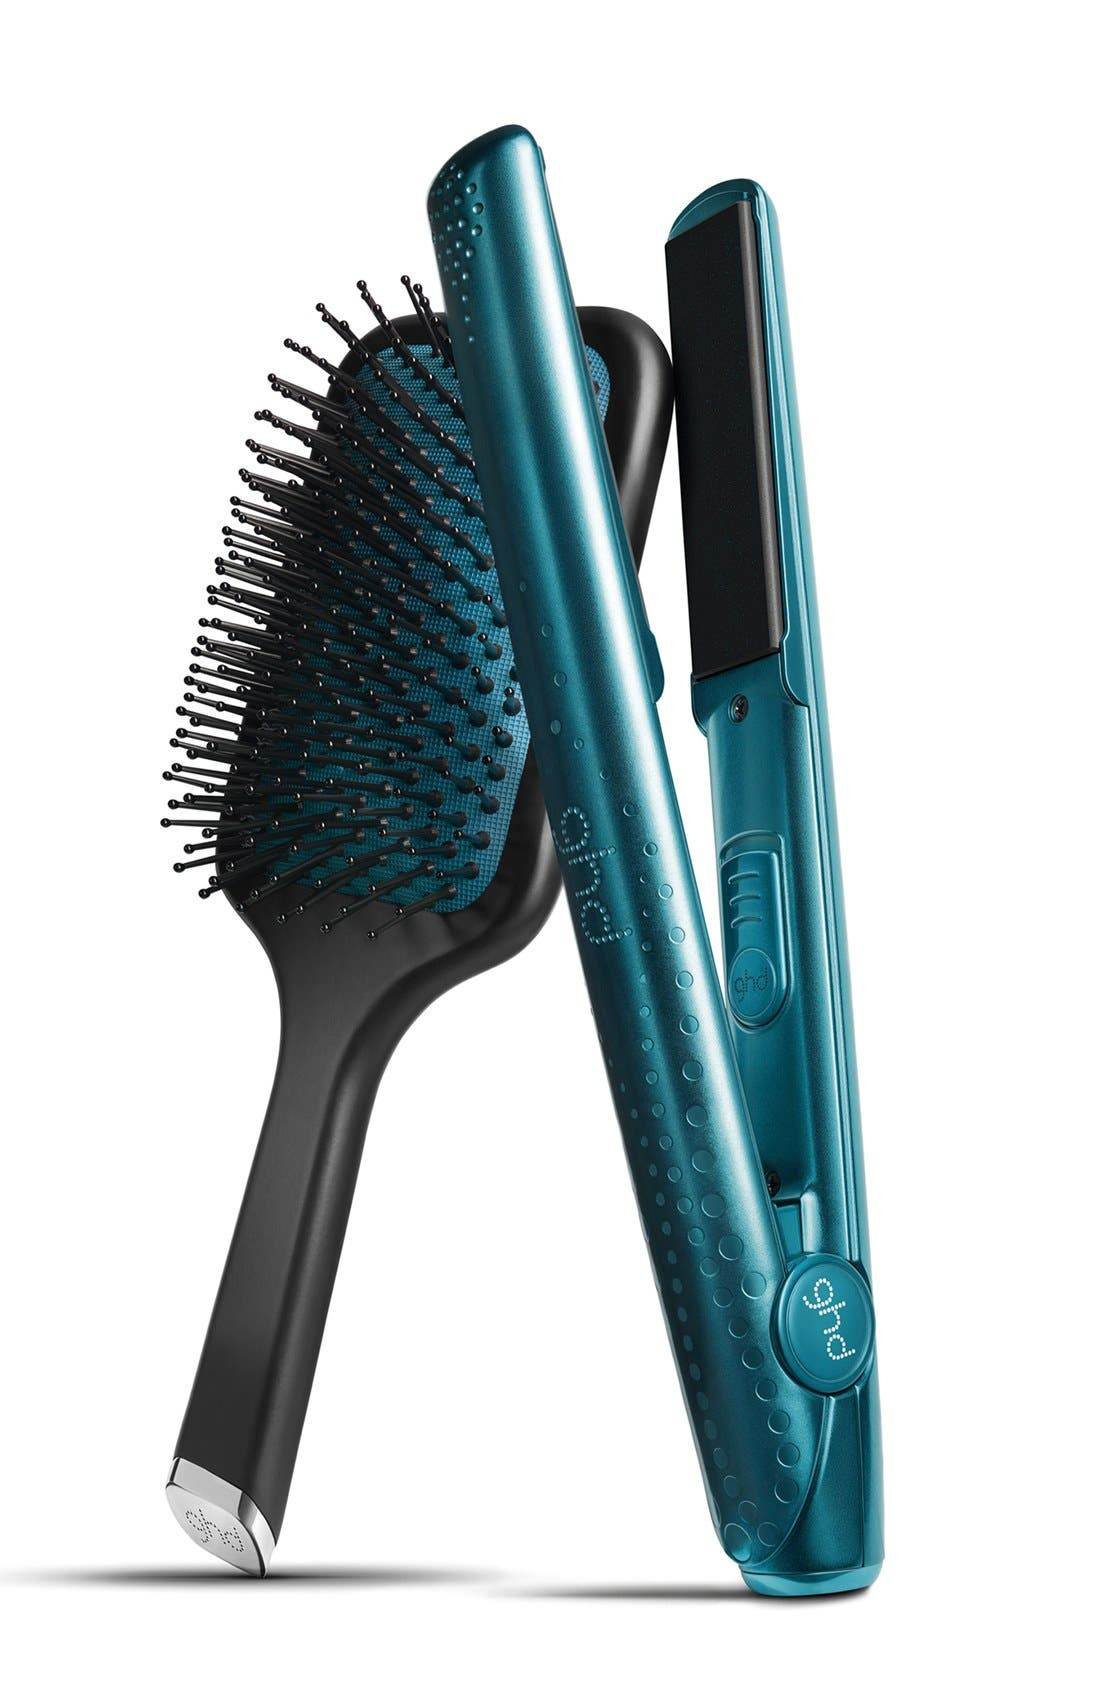 Main Image - ghd 'Jewel Collection - Sapphire' Styler & Hairbrush (Limited Edition) ($290 Value)